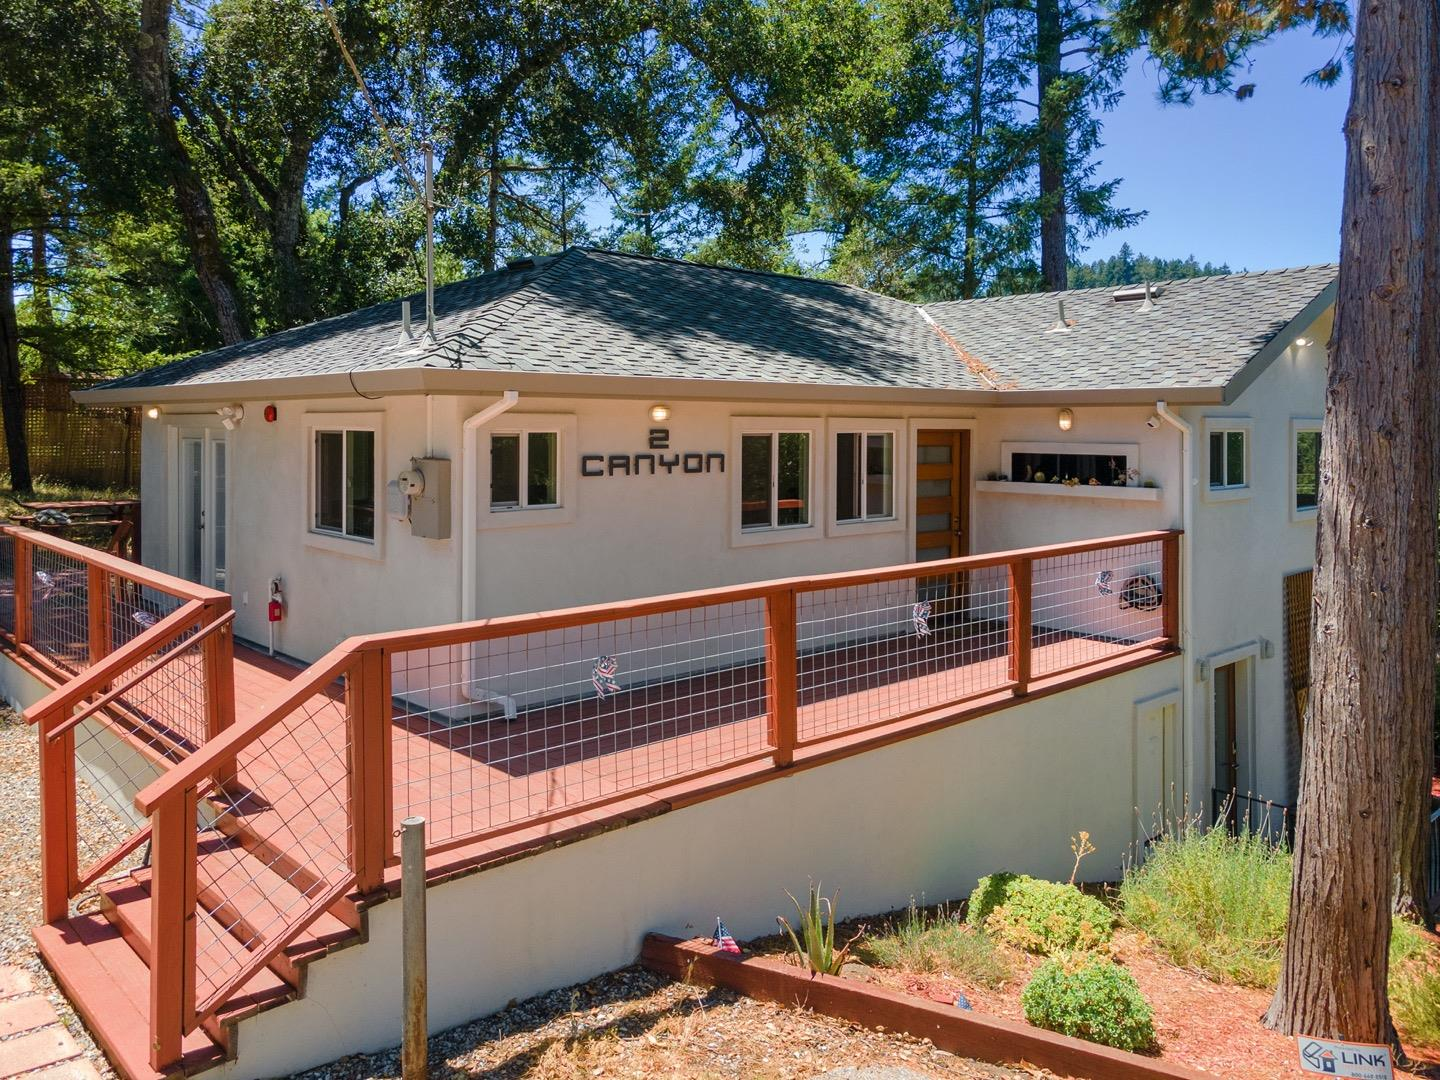 Beautiful contemporary 4 bedroom/ 3 bathroom home in the Mt Hermon Community. Great central location between the towns of Scotts Valley and Felton. Average driving time to Felton is 2 min, 3 min to Scotts Valley, and just over 10 min to Santa Cruz making this a great commuter location. The home underwent a major remodel in the second half of 2016 which included updating the bedrooms, bathrooms, and kitchen, as well as a new roof, foundation repairs, new fire sprinklers, and a new engineered septic system.  Outside there is a good mix of sun and shade with sunny deck. If you have dogs or want to own chickens, there is a dog run to keep them safe and secure. For those seeking adventure you can access hiking and biking trails just down the road. For a small fee, you can gain access to the Mount Hermon amenities which includes a community swimming pool and adventure center. This safe neighborhood doesn't have a traditional HOA, but has a water and road agreement.